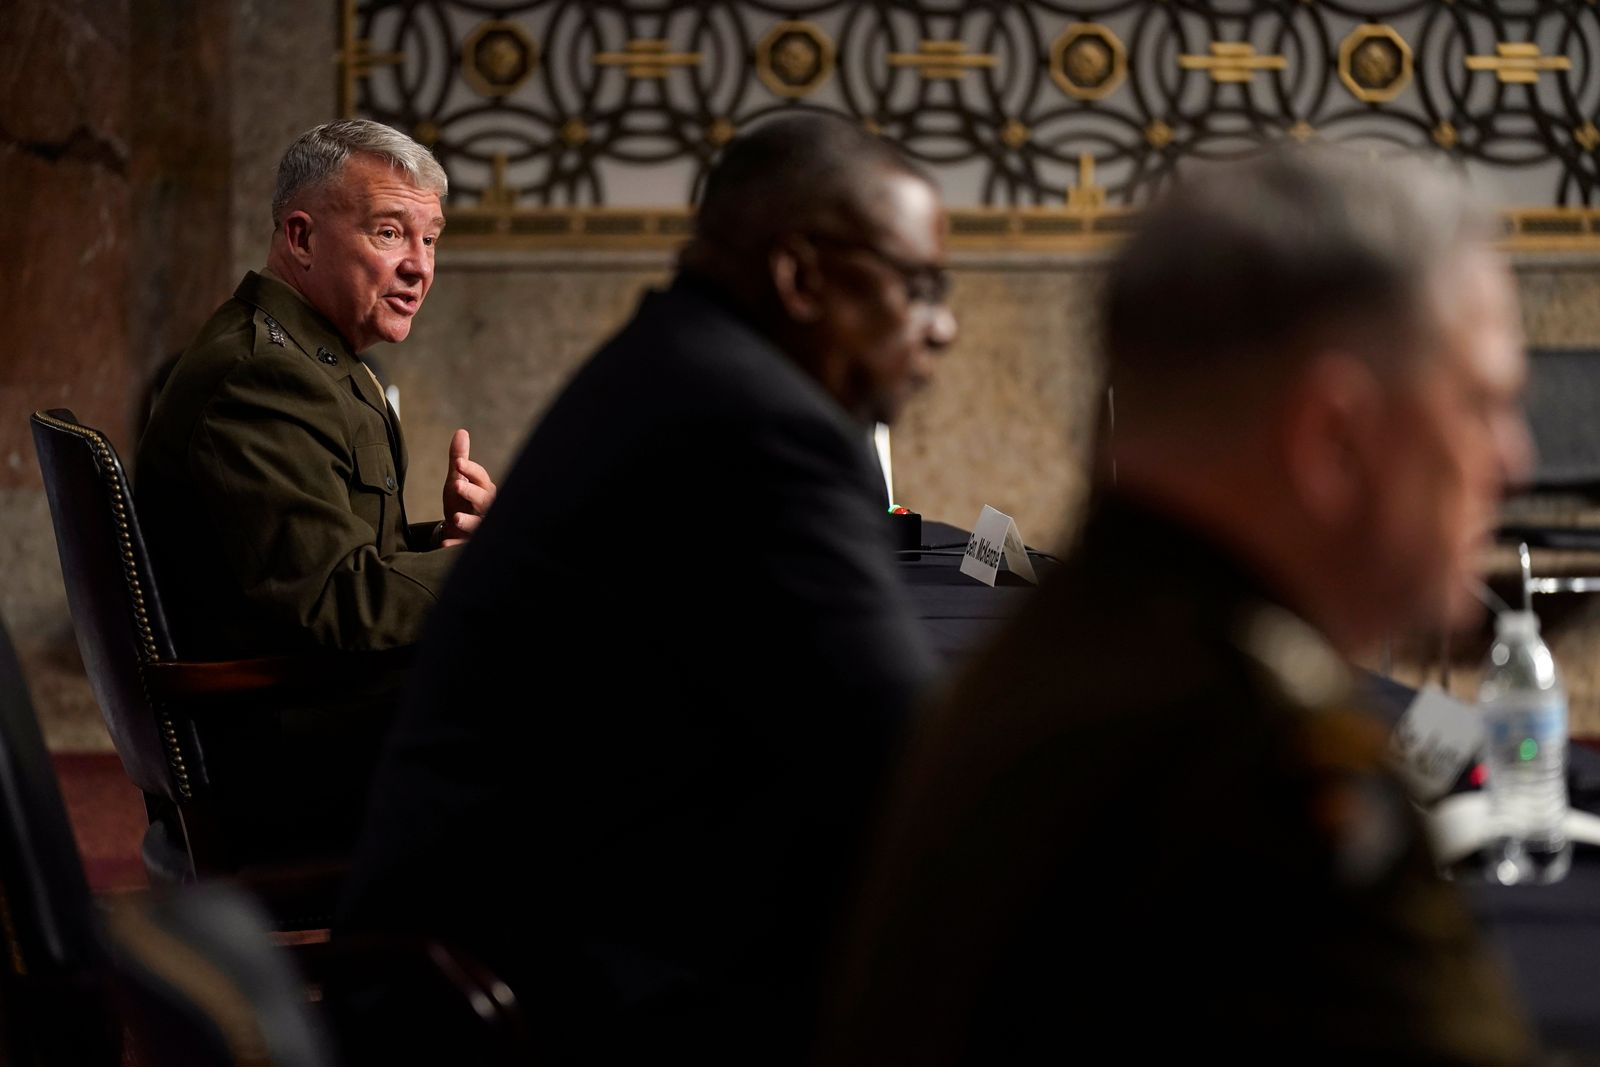 Senate Armed Services Committee hearing on the conclusion of military operations in Afghanistan